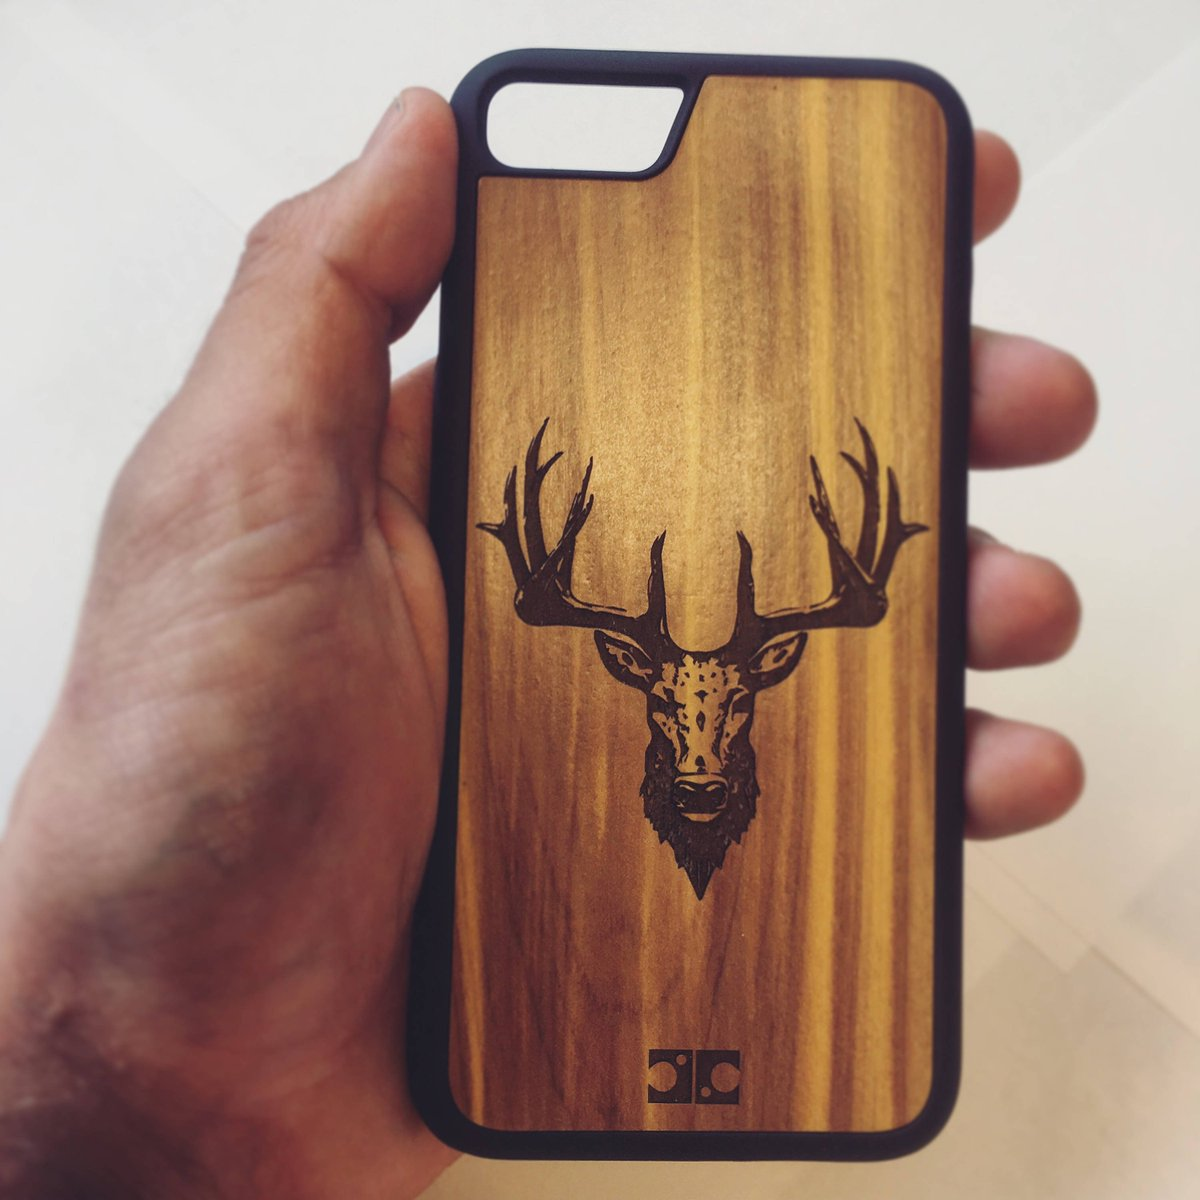 Juicy Creations On Twitter Stag Wooden Bamboo Phone Case Engraved Wood Cover For Iphone 5 6 7 Of Https T Co 0c9oc7ghnj Etsy Woodcase